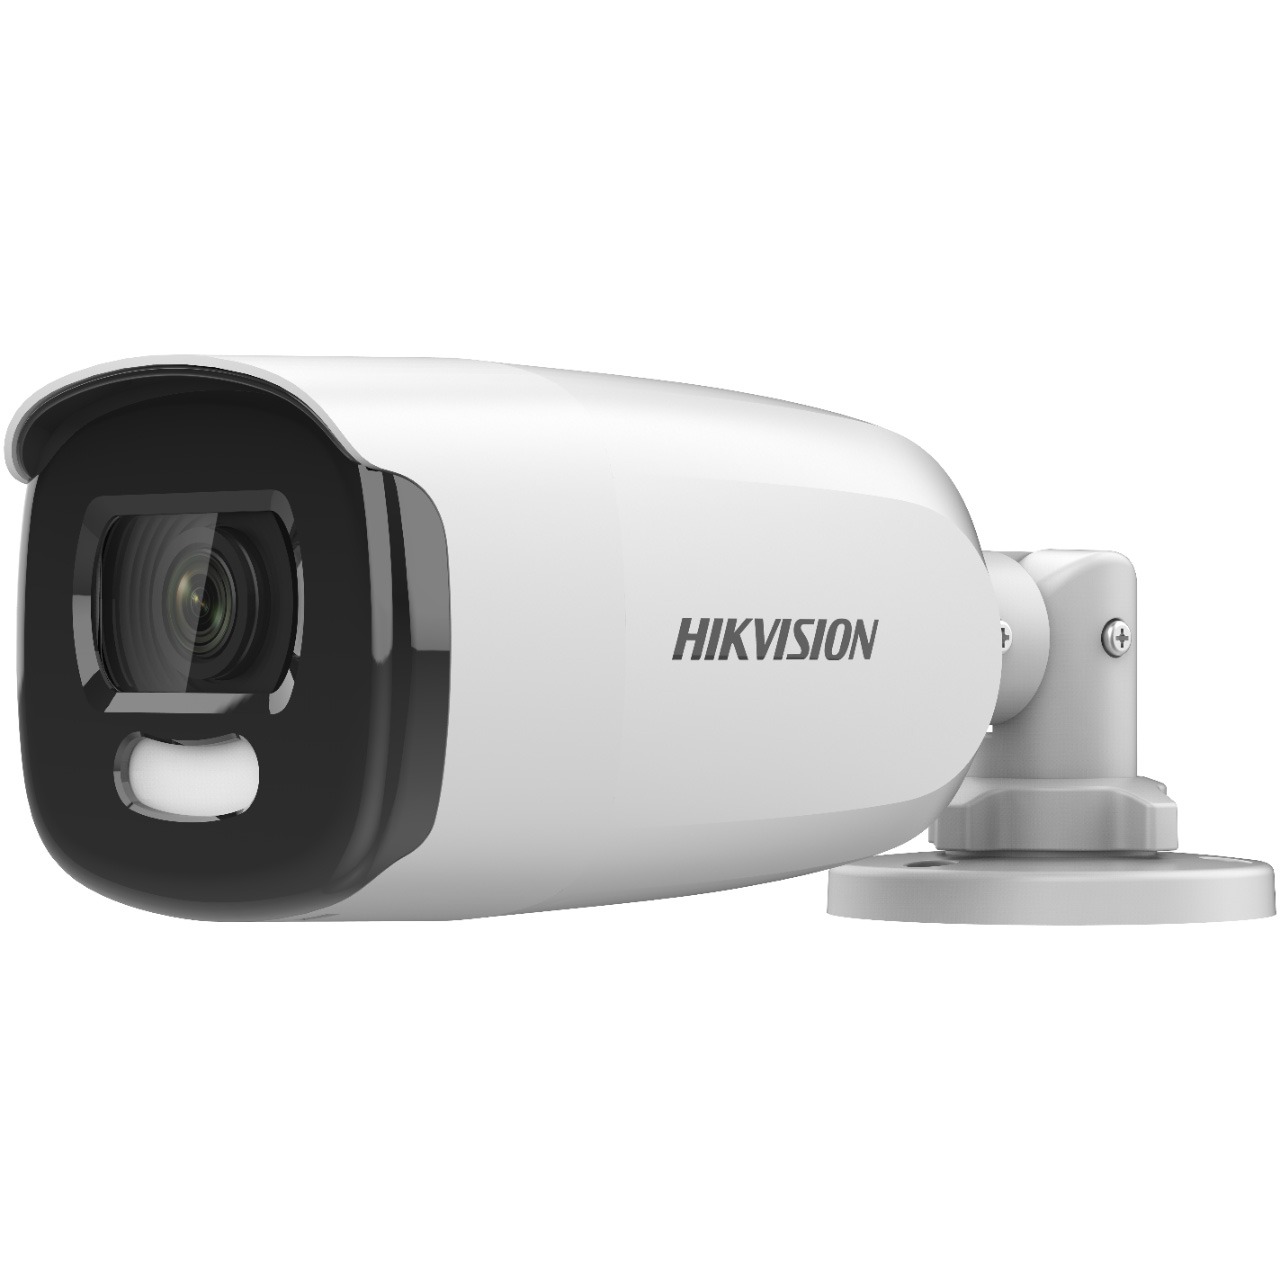 Hikvision DS-2CE12HFT-F28(2.8mm)